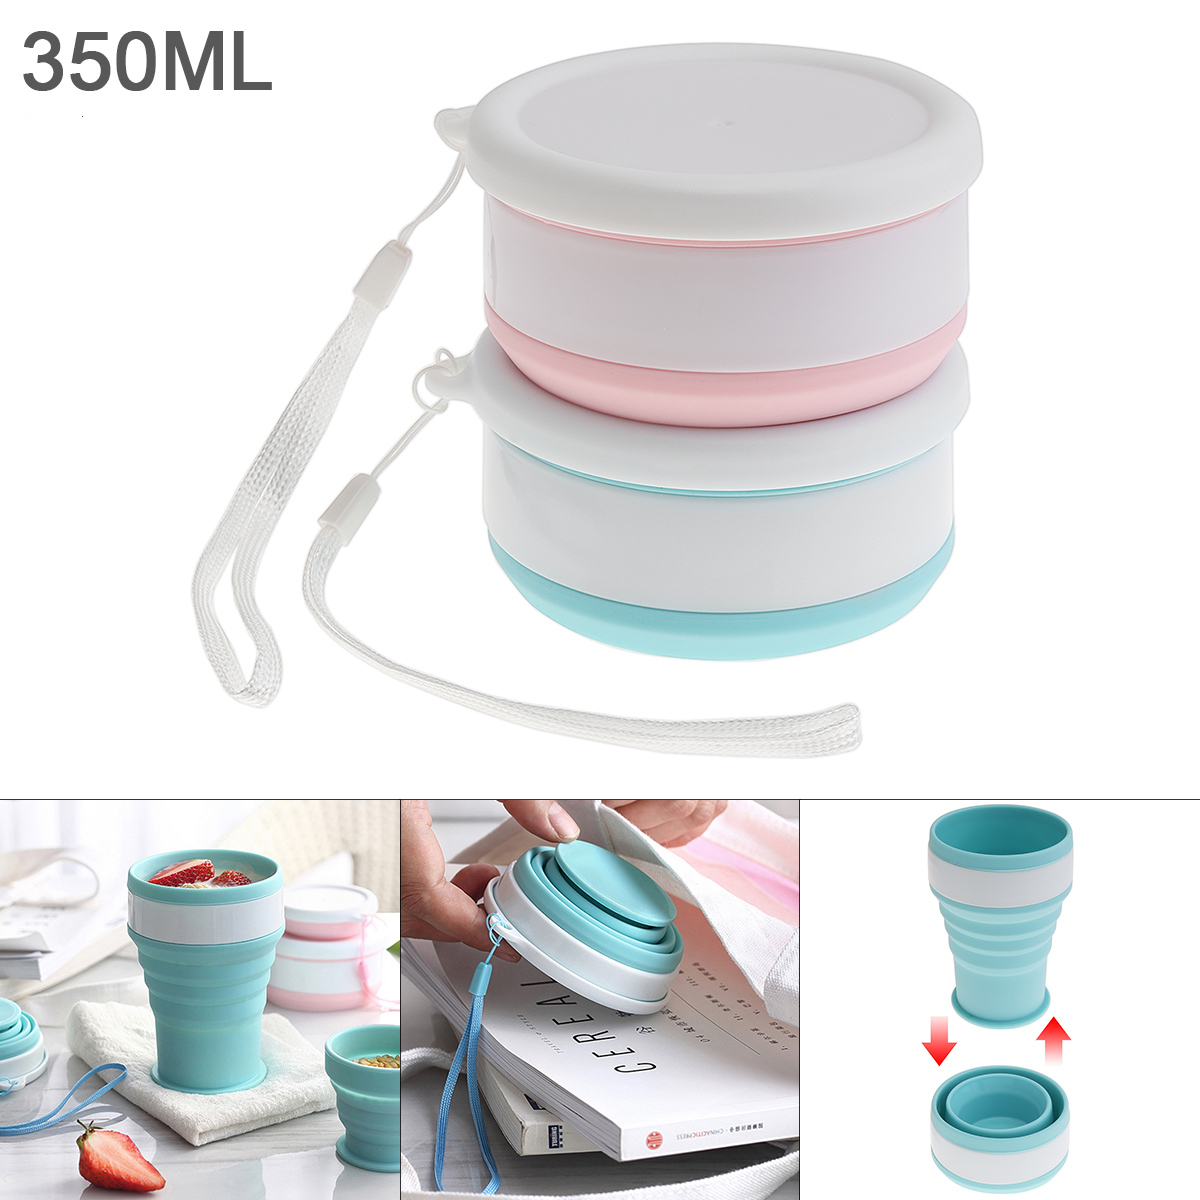 350ML 2 Colors Portable Circular Scalable Silicone Folding Cup  With  Tether For - 50 Centigrade ~ 200 Centigrade